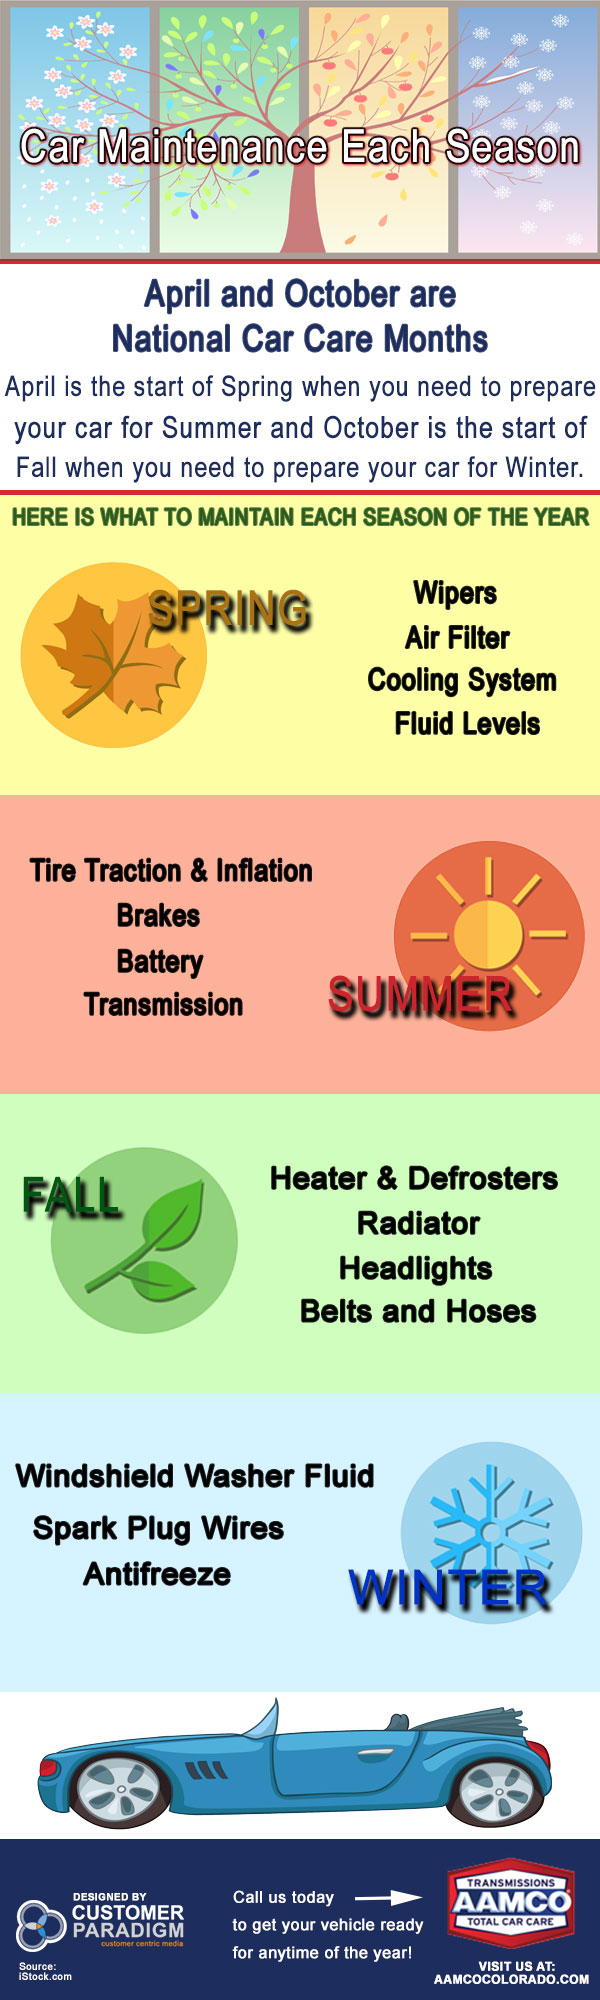 Maintain your vehicle for every season